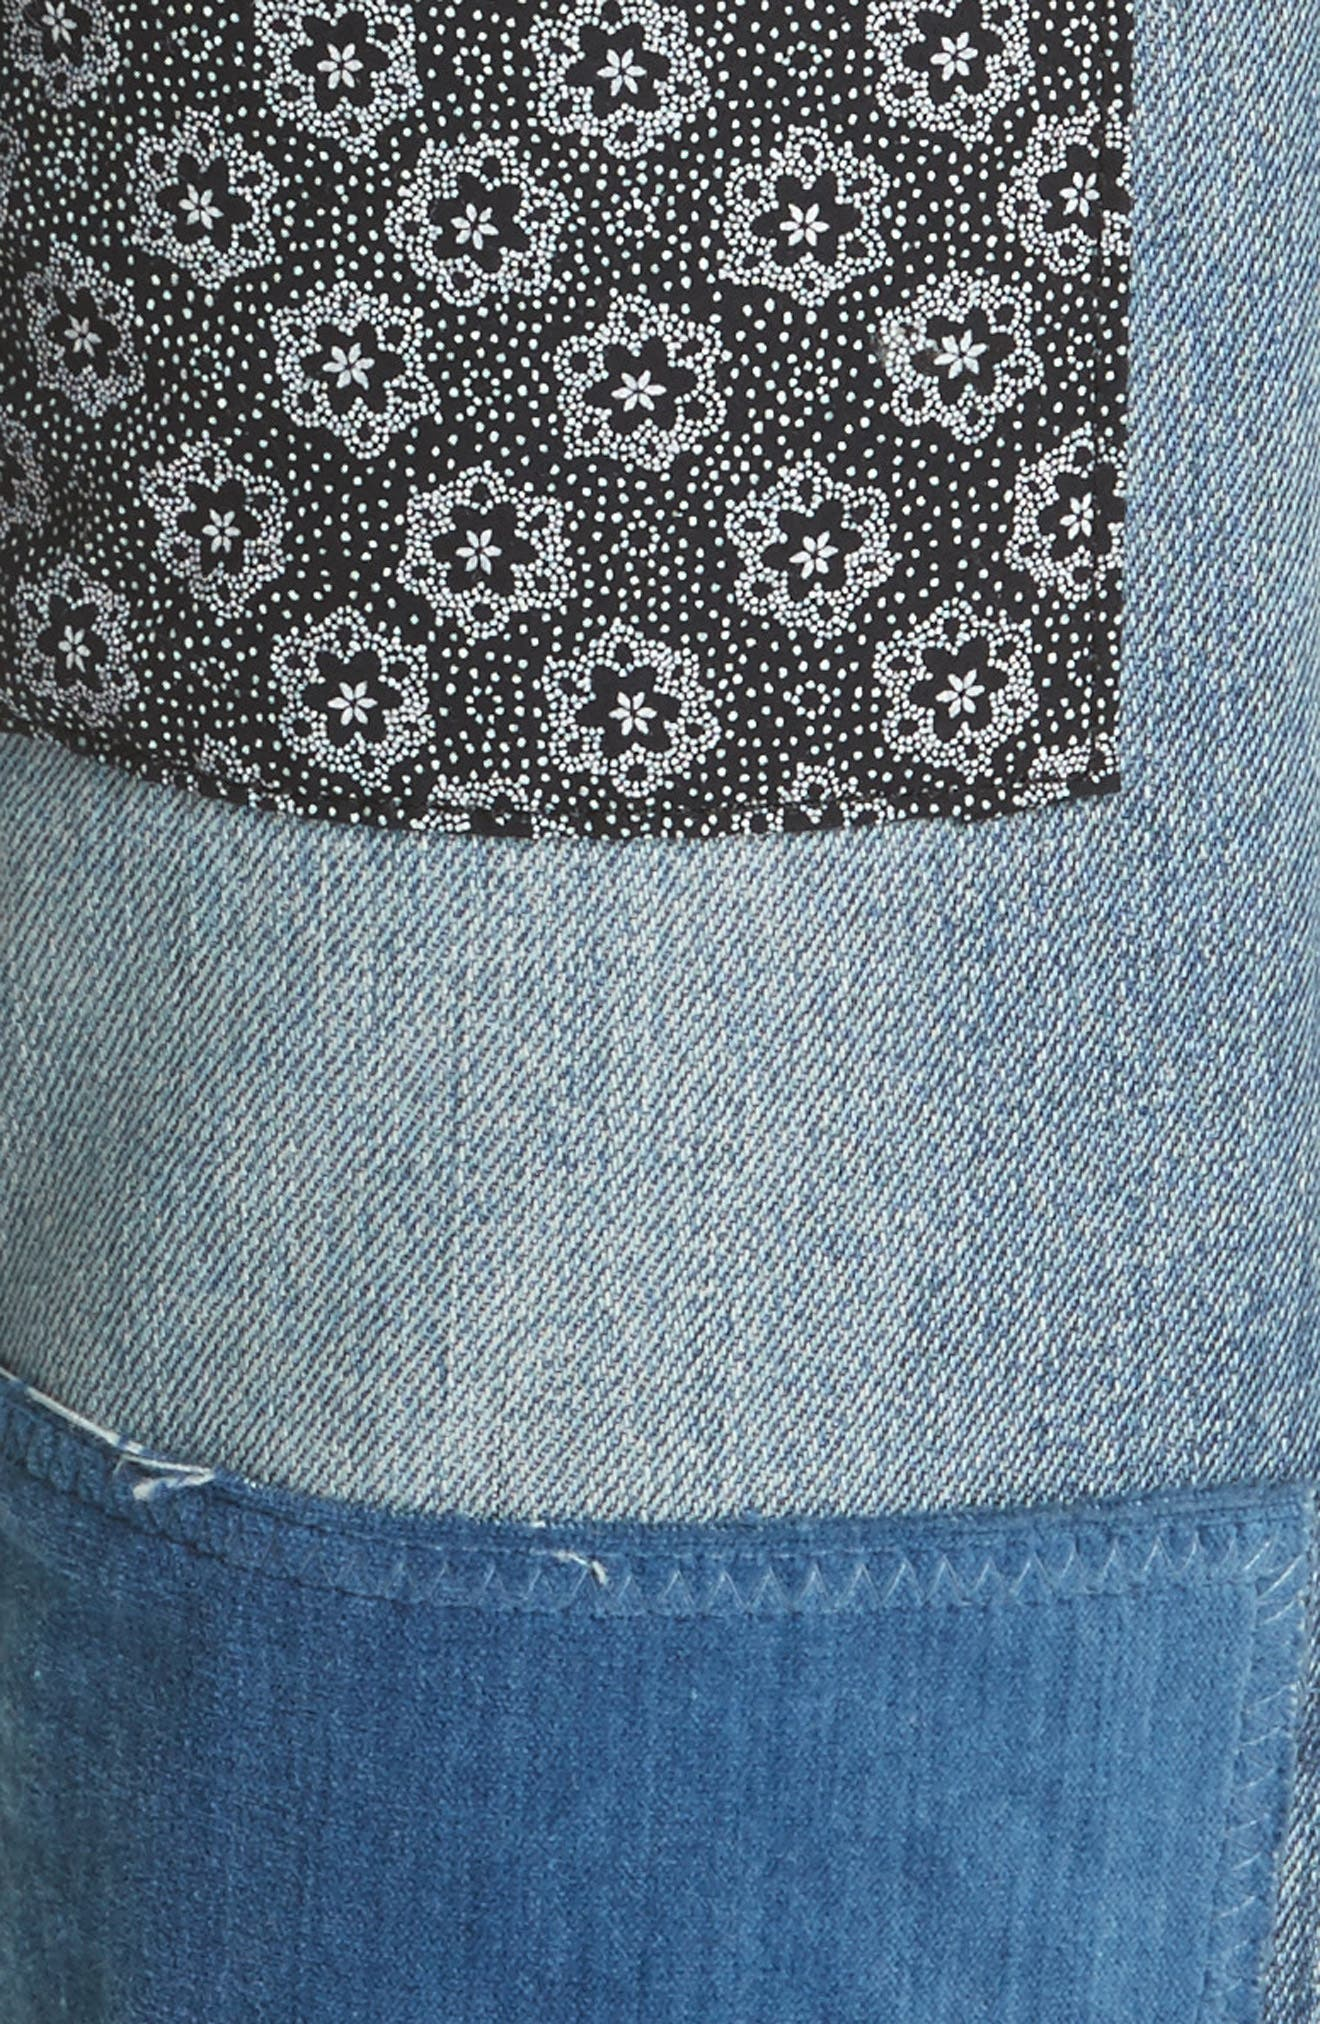 Alternate Image 5  - La Vie Rebecca Taylor Patched Velvet & Rigid Denim Jeans (Blueprint Patch)